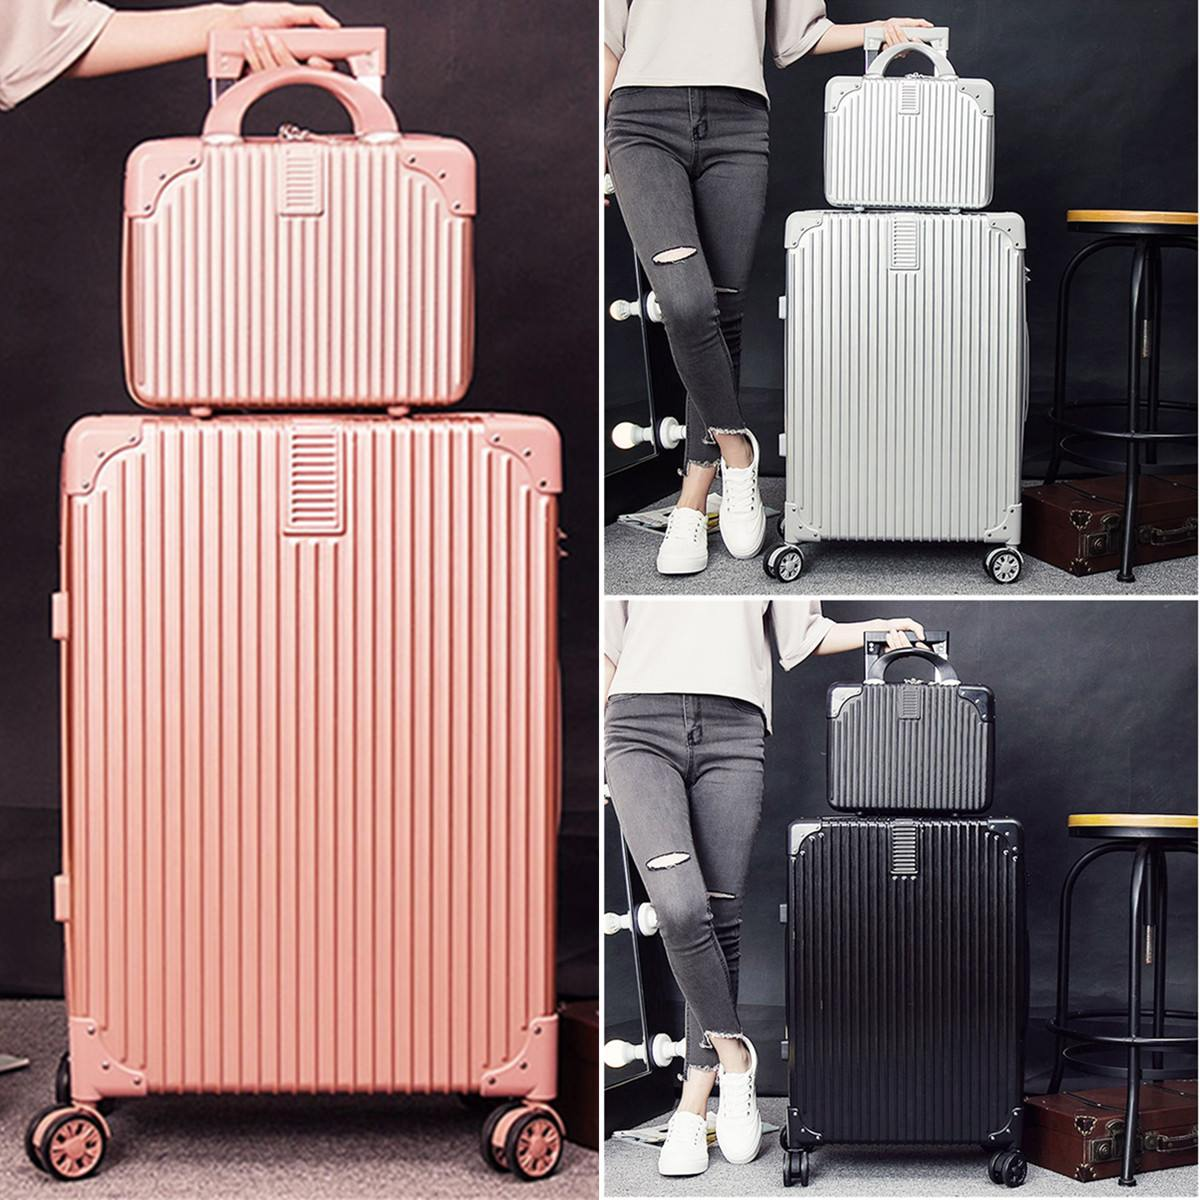 24 Inch Rolling Luggage Spinner Password Universal Wheels Women Travel Suitcase Men Fashion Cabin Carry-on Trolley Box Luggage